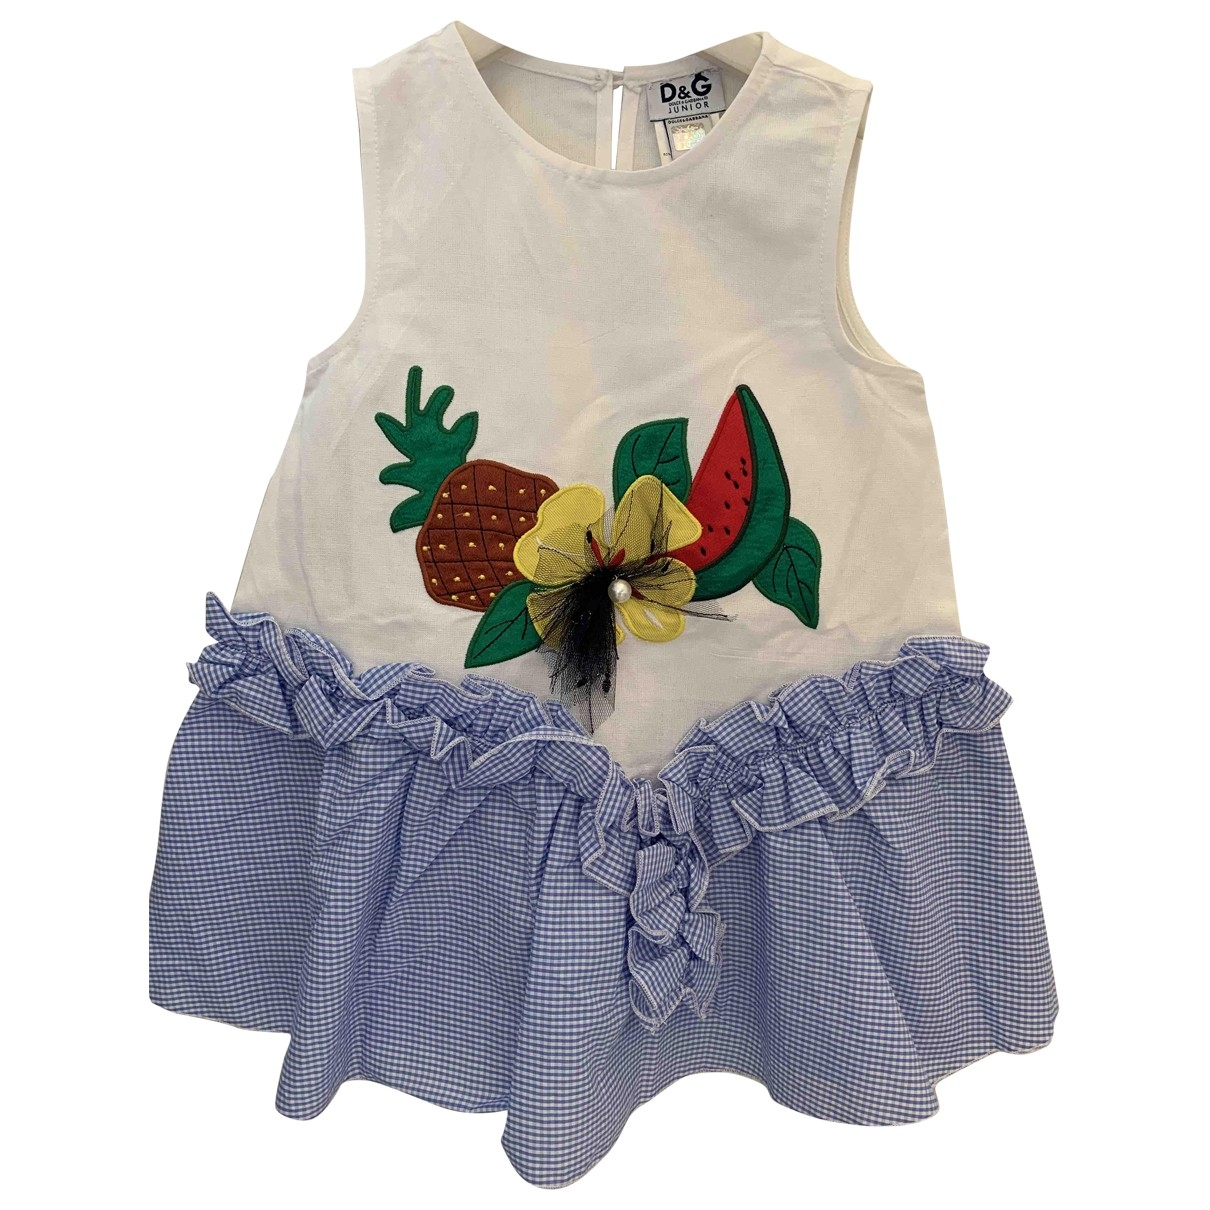 D&g \N Linen dress for Kids 3 years - up to 98cm FR